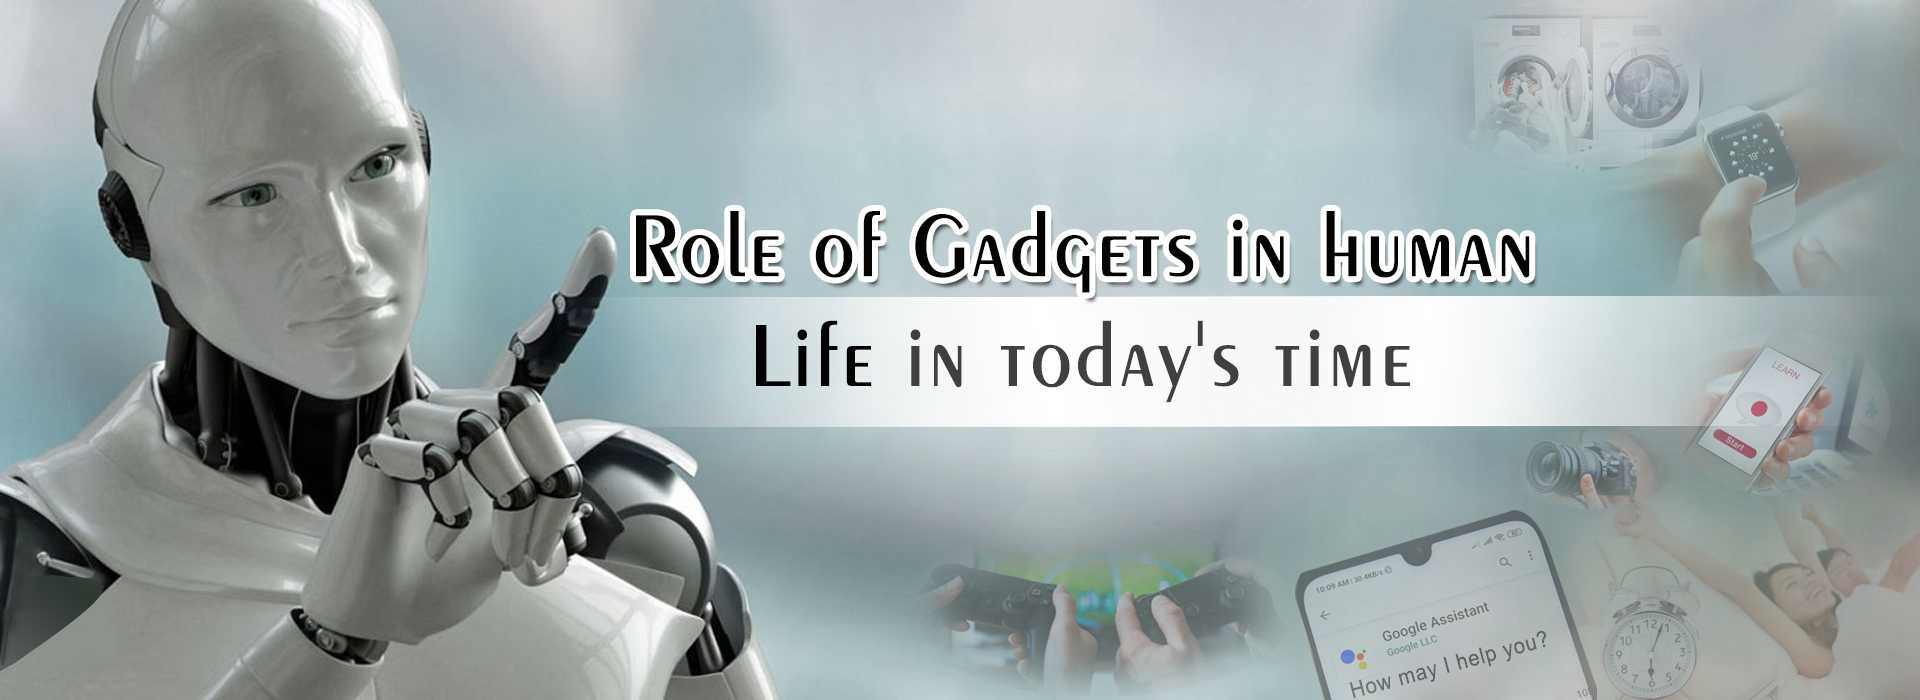 Gadget role in human life